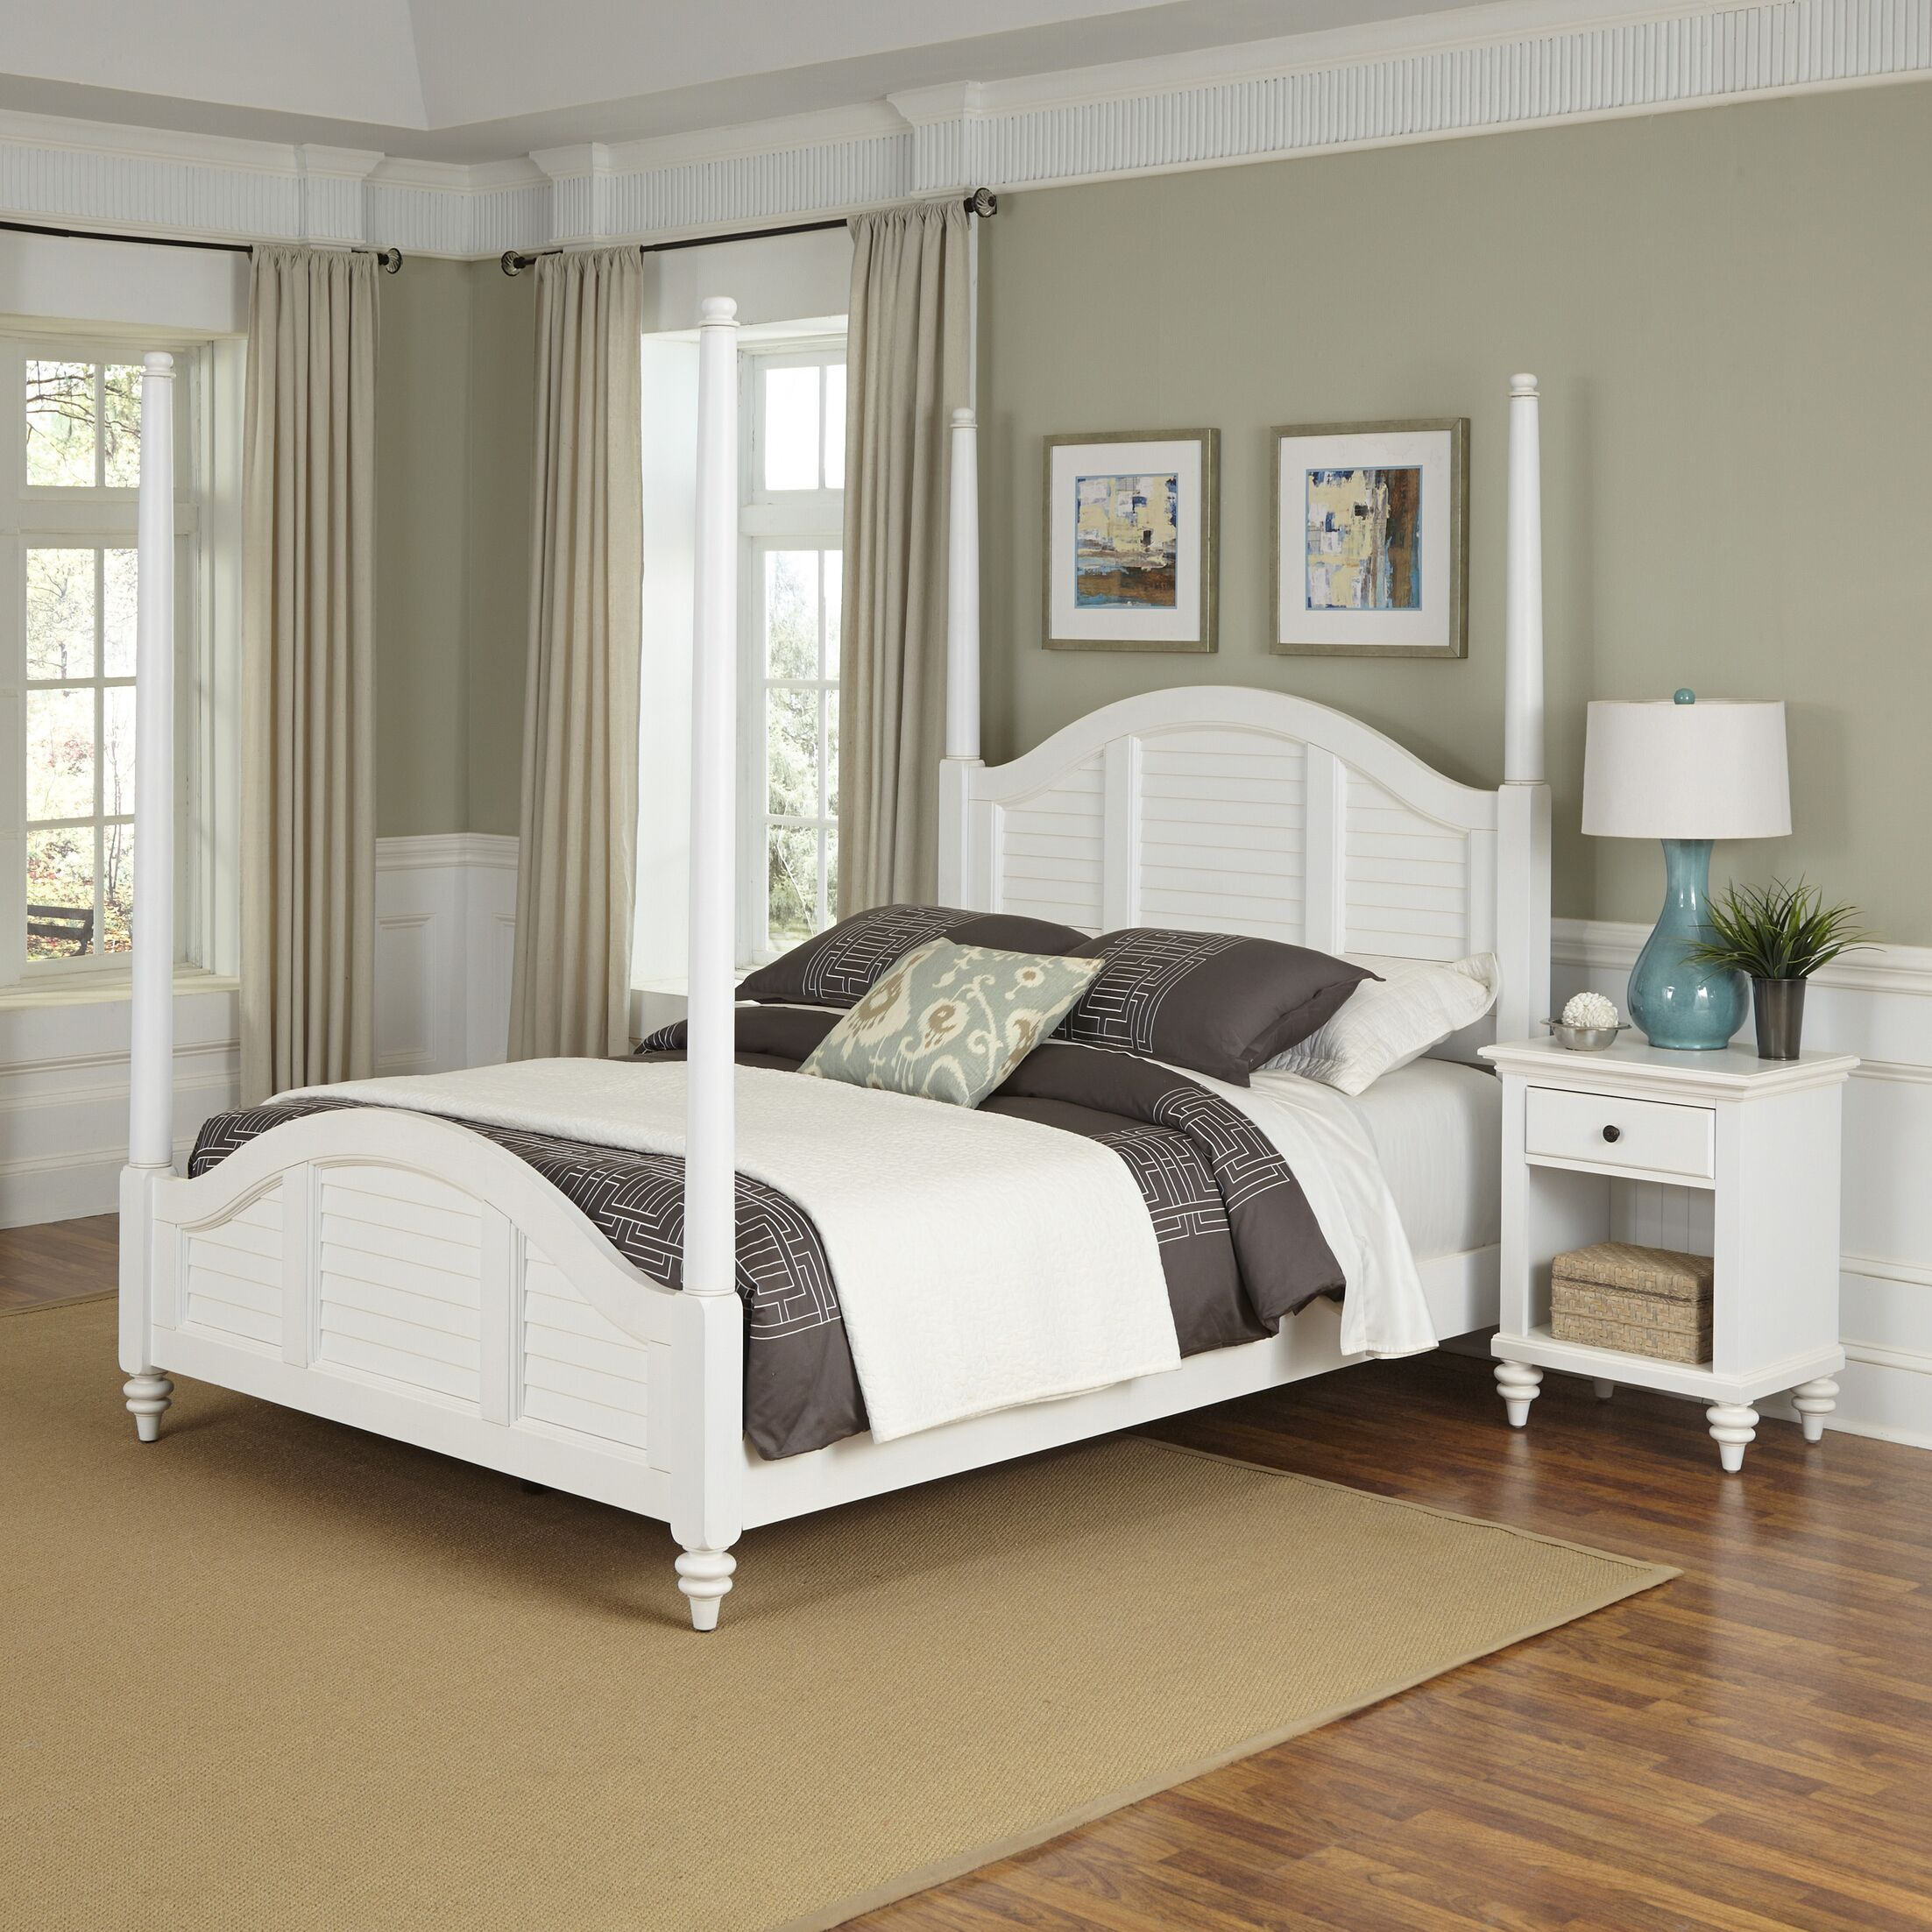 Harrison Traditional Four Poster 2 Piece Bedroom Set Color: Espresso, Size: King